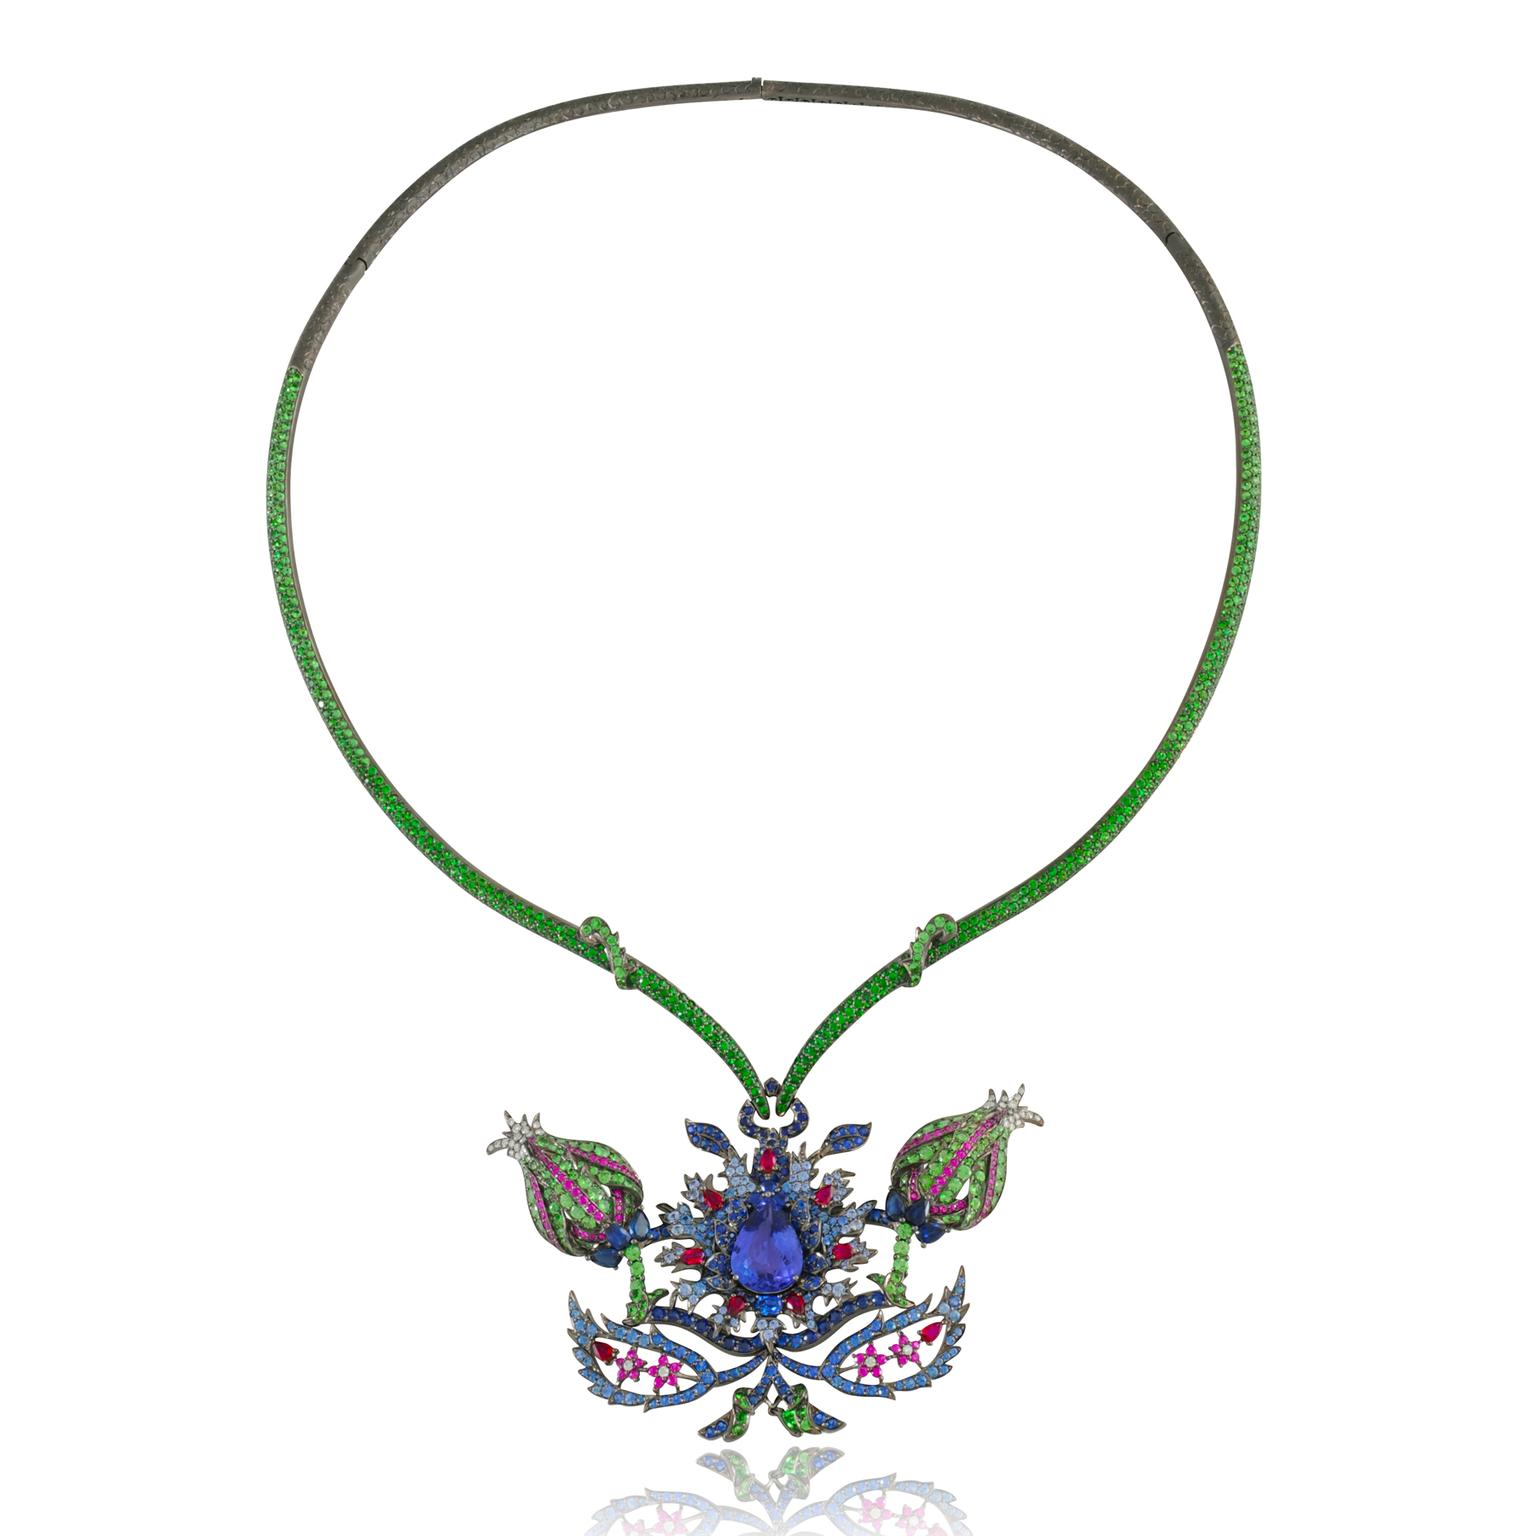 Lydia Courteille Topkapi tanzanite necklace